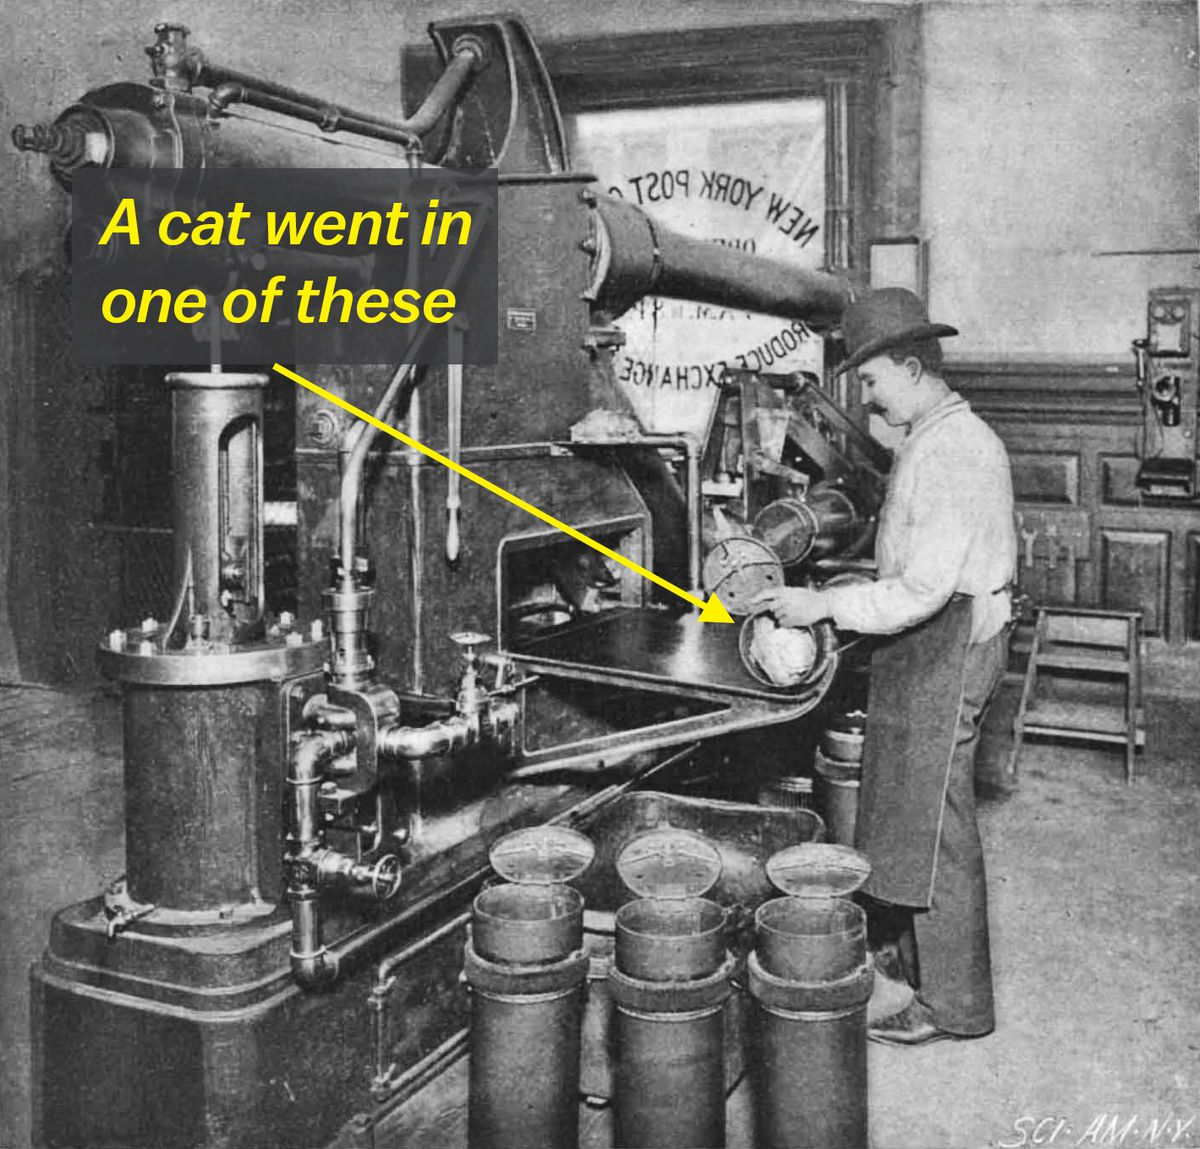 Yes, a cat was sent through a pneumatic tube. It was for its own good.